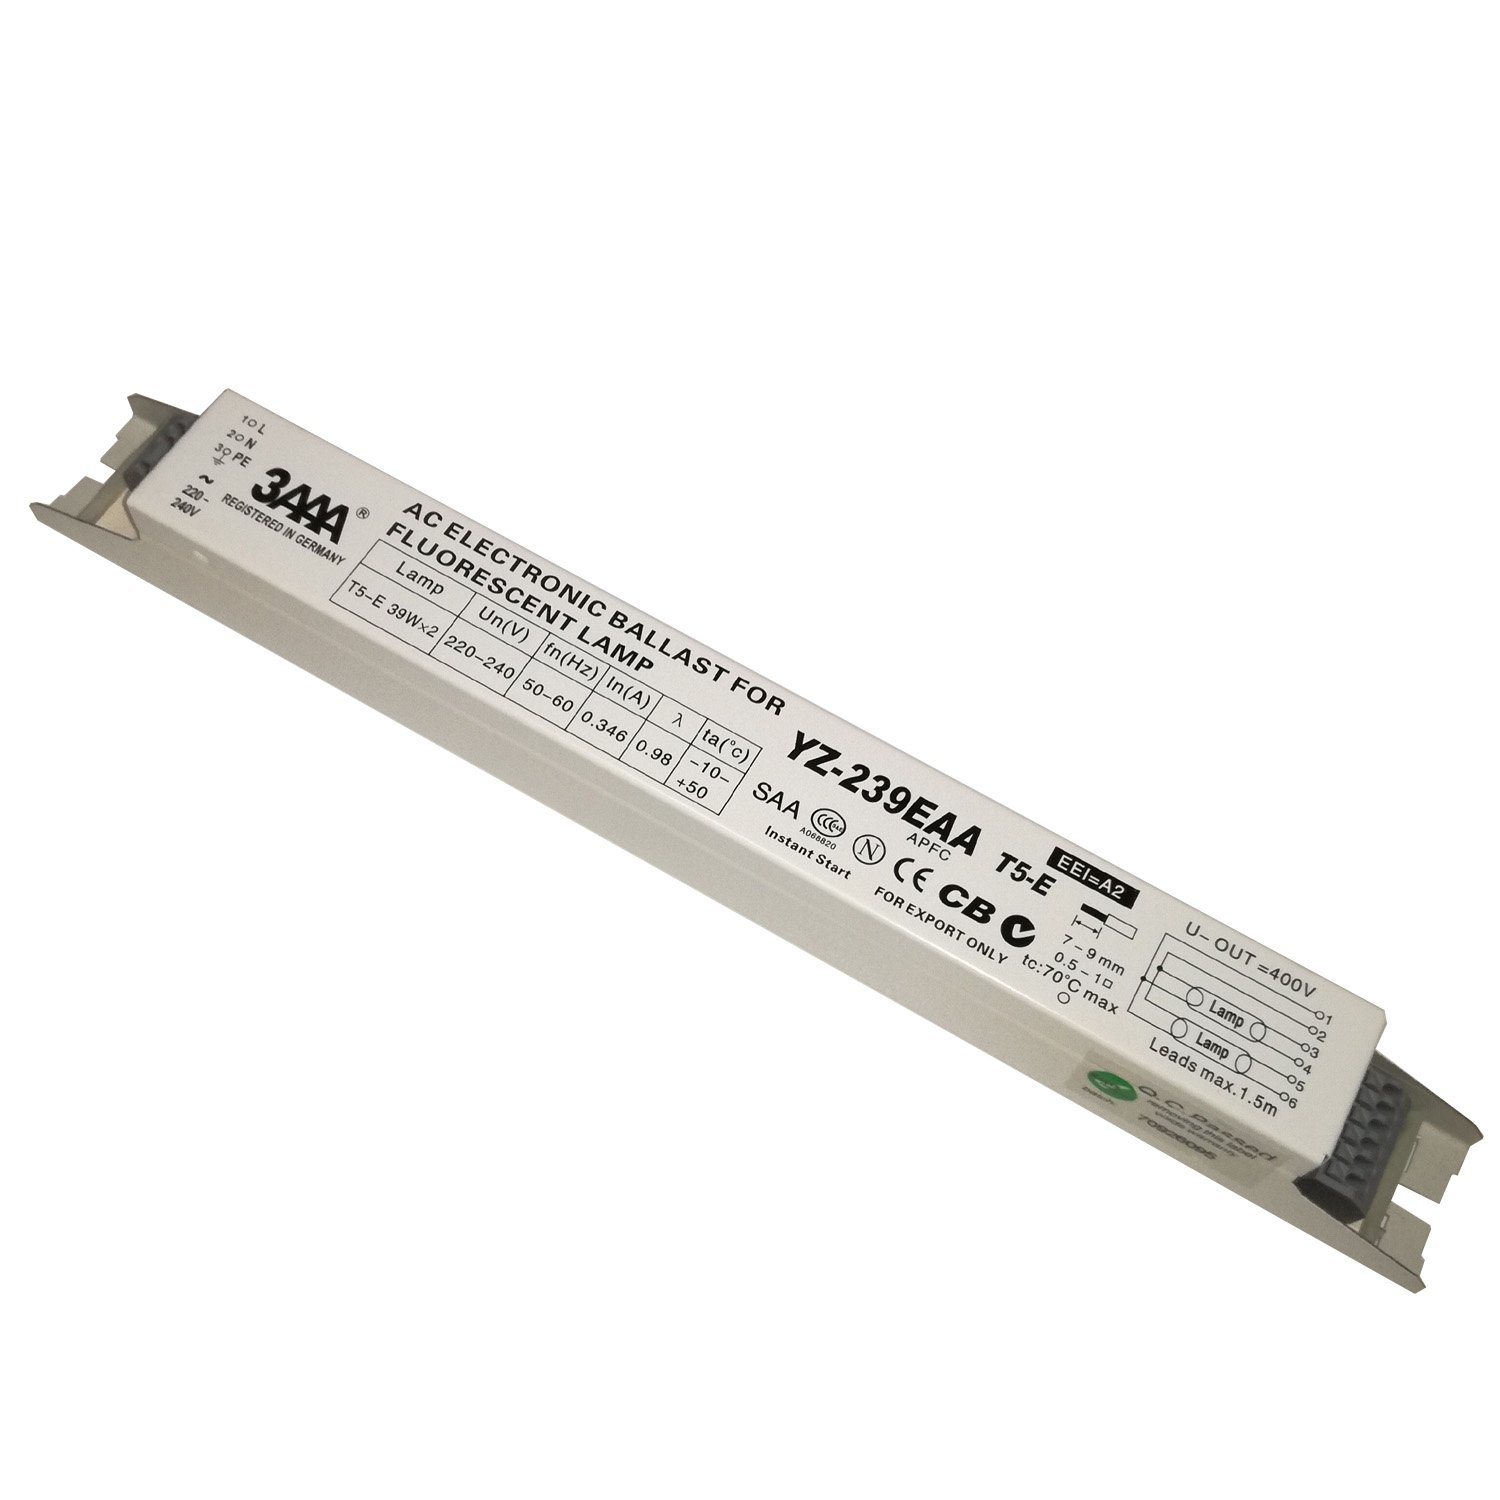 3aaa Yz 239eaa T5 E 220 240v 2x39w Fluorescent Lamp Ac Electronic Ballasts For L S In Addition 4 Ballast Wiring On Instant Start Business Industry Science